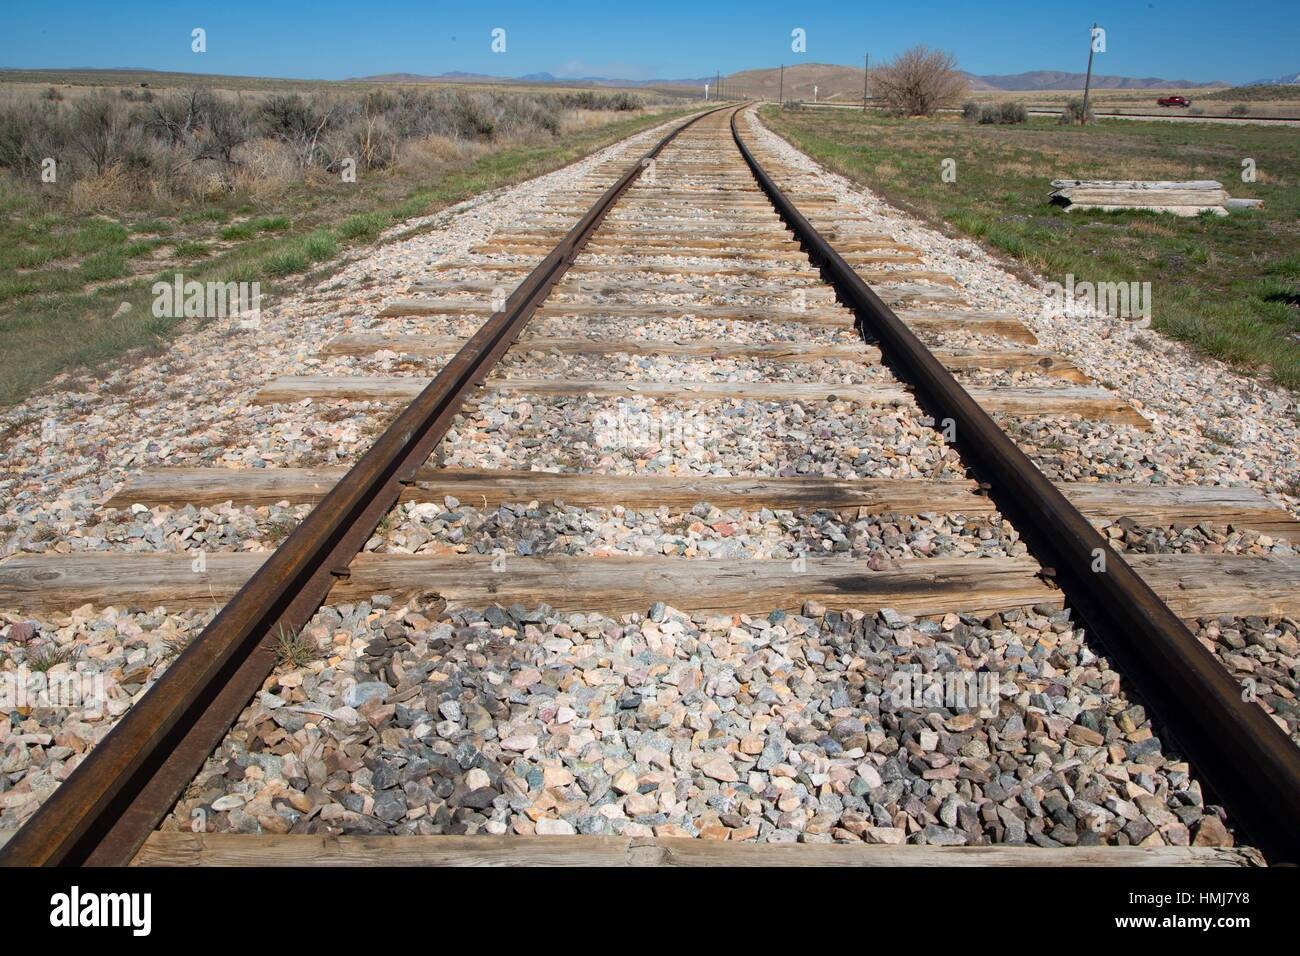 Railroad tracks, Golden Spike National Historic Site, Box Elder County, Utah. - Stock Image